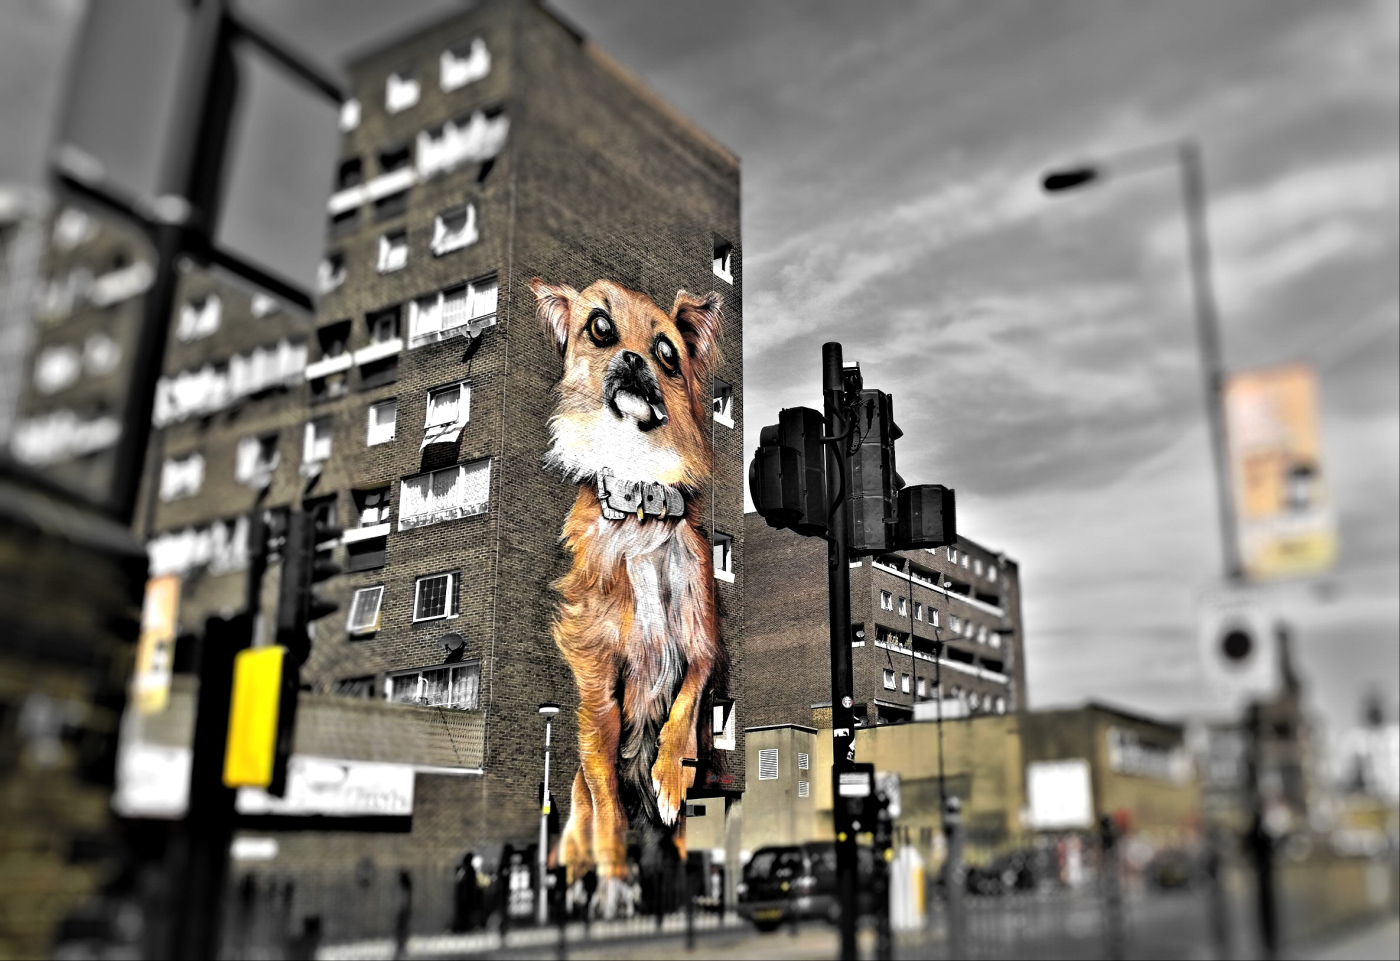 london-streets-giant-animals-10